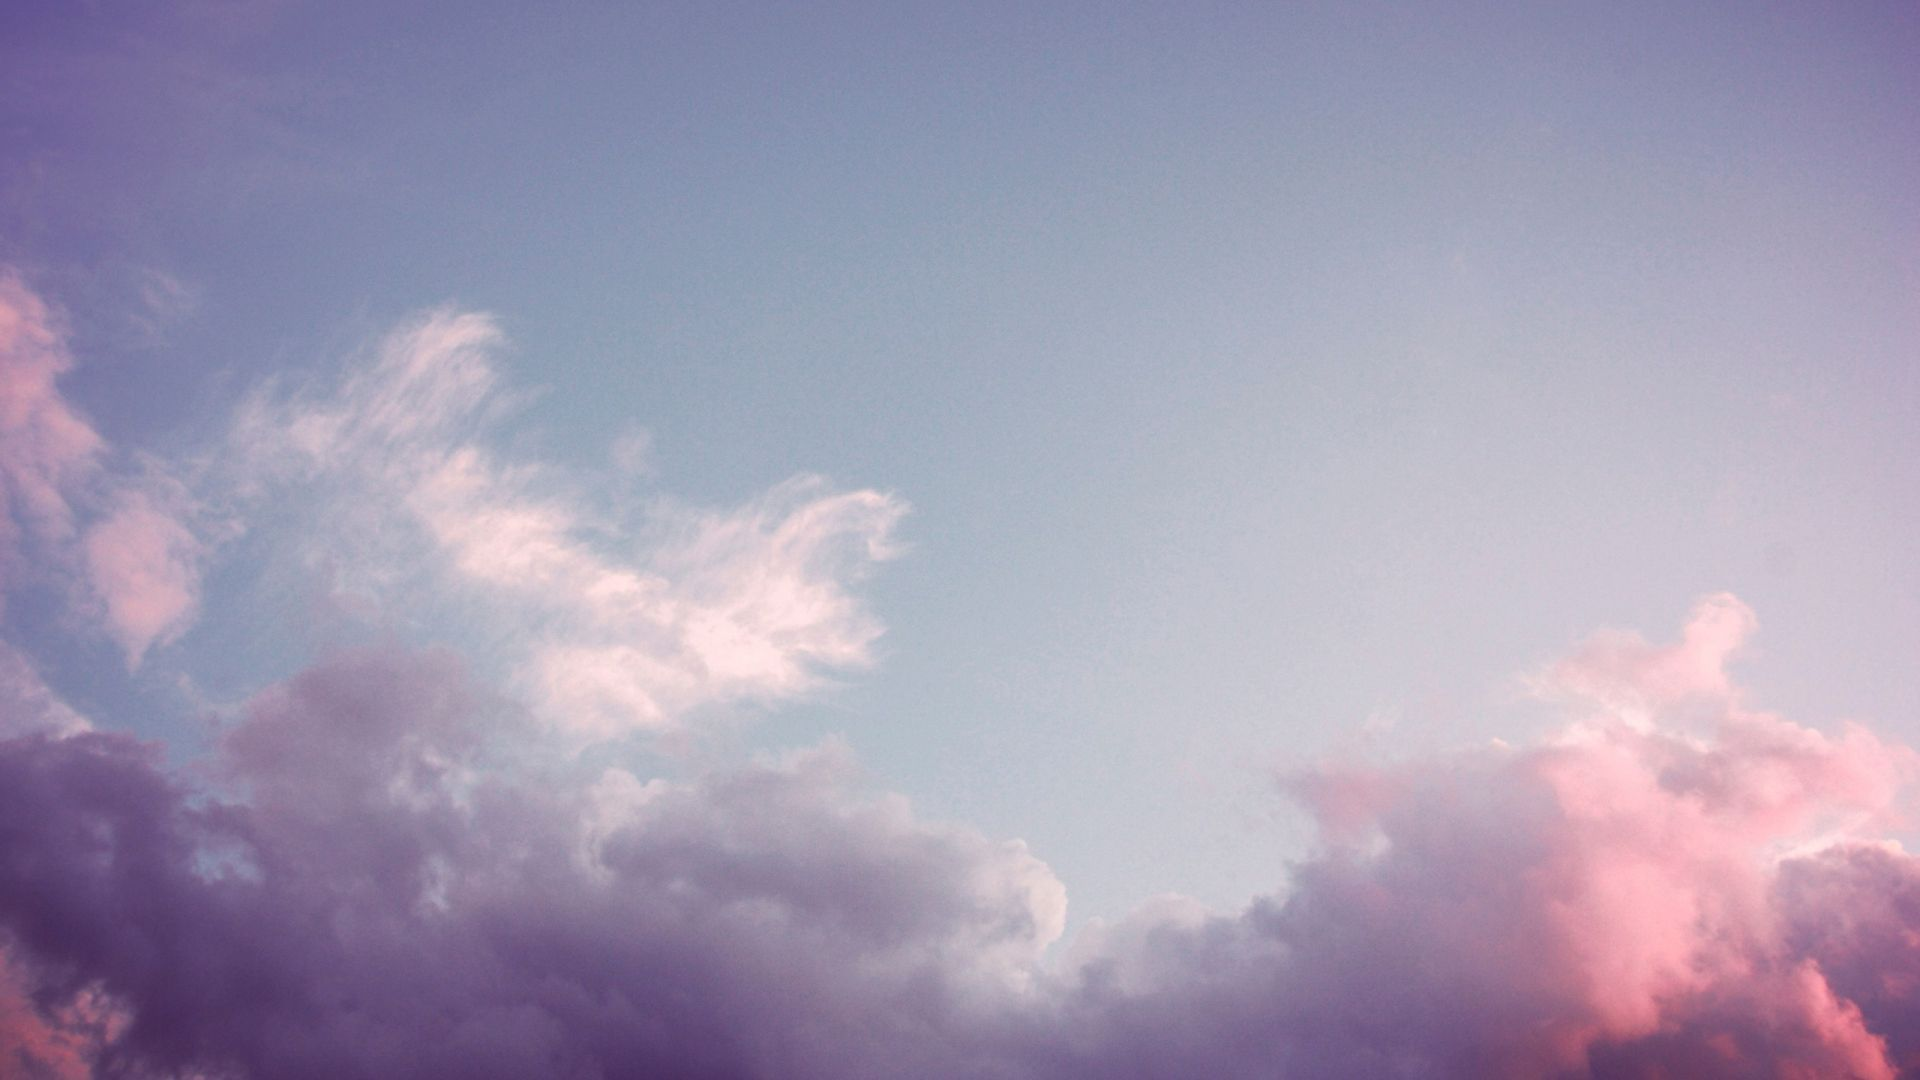 Aesthetic Cloud Laptop Wallpapers